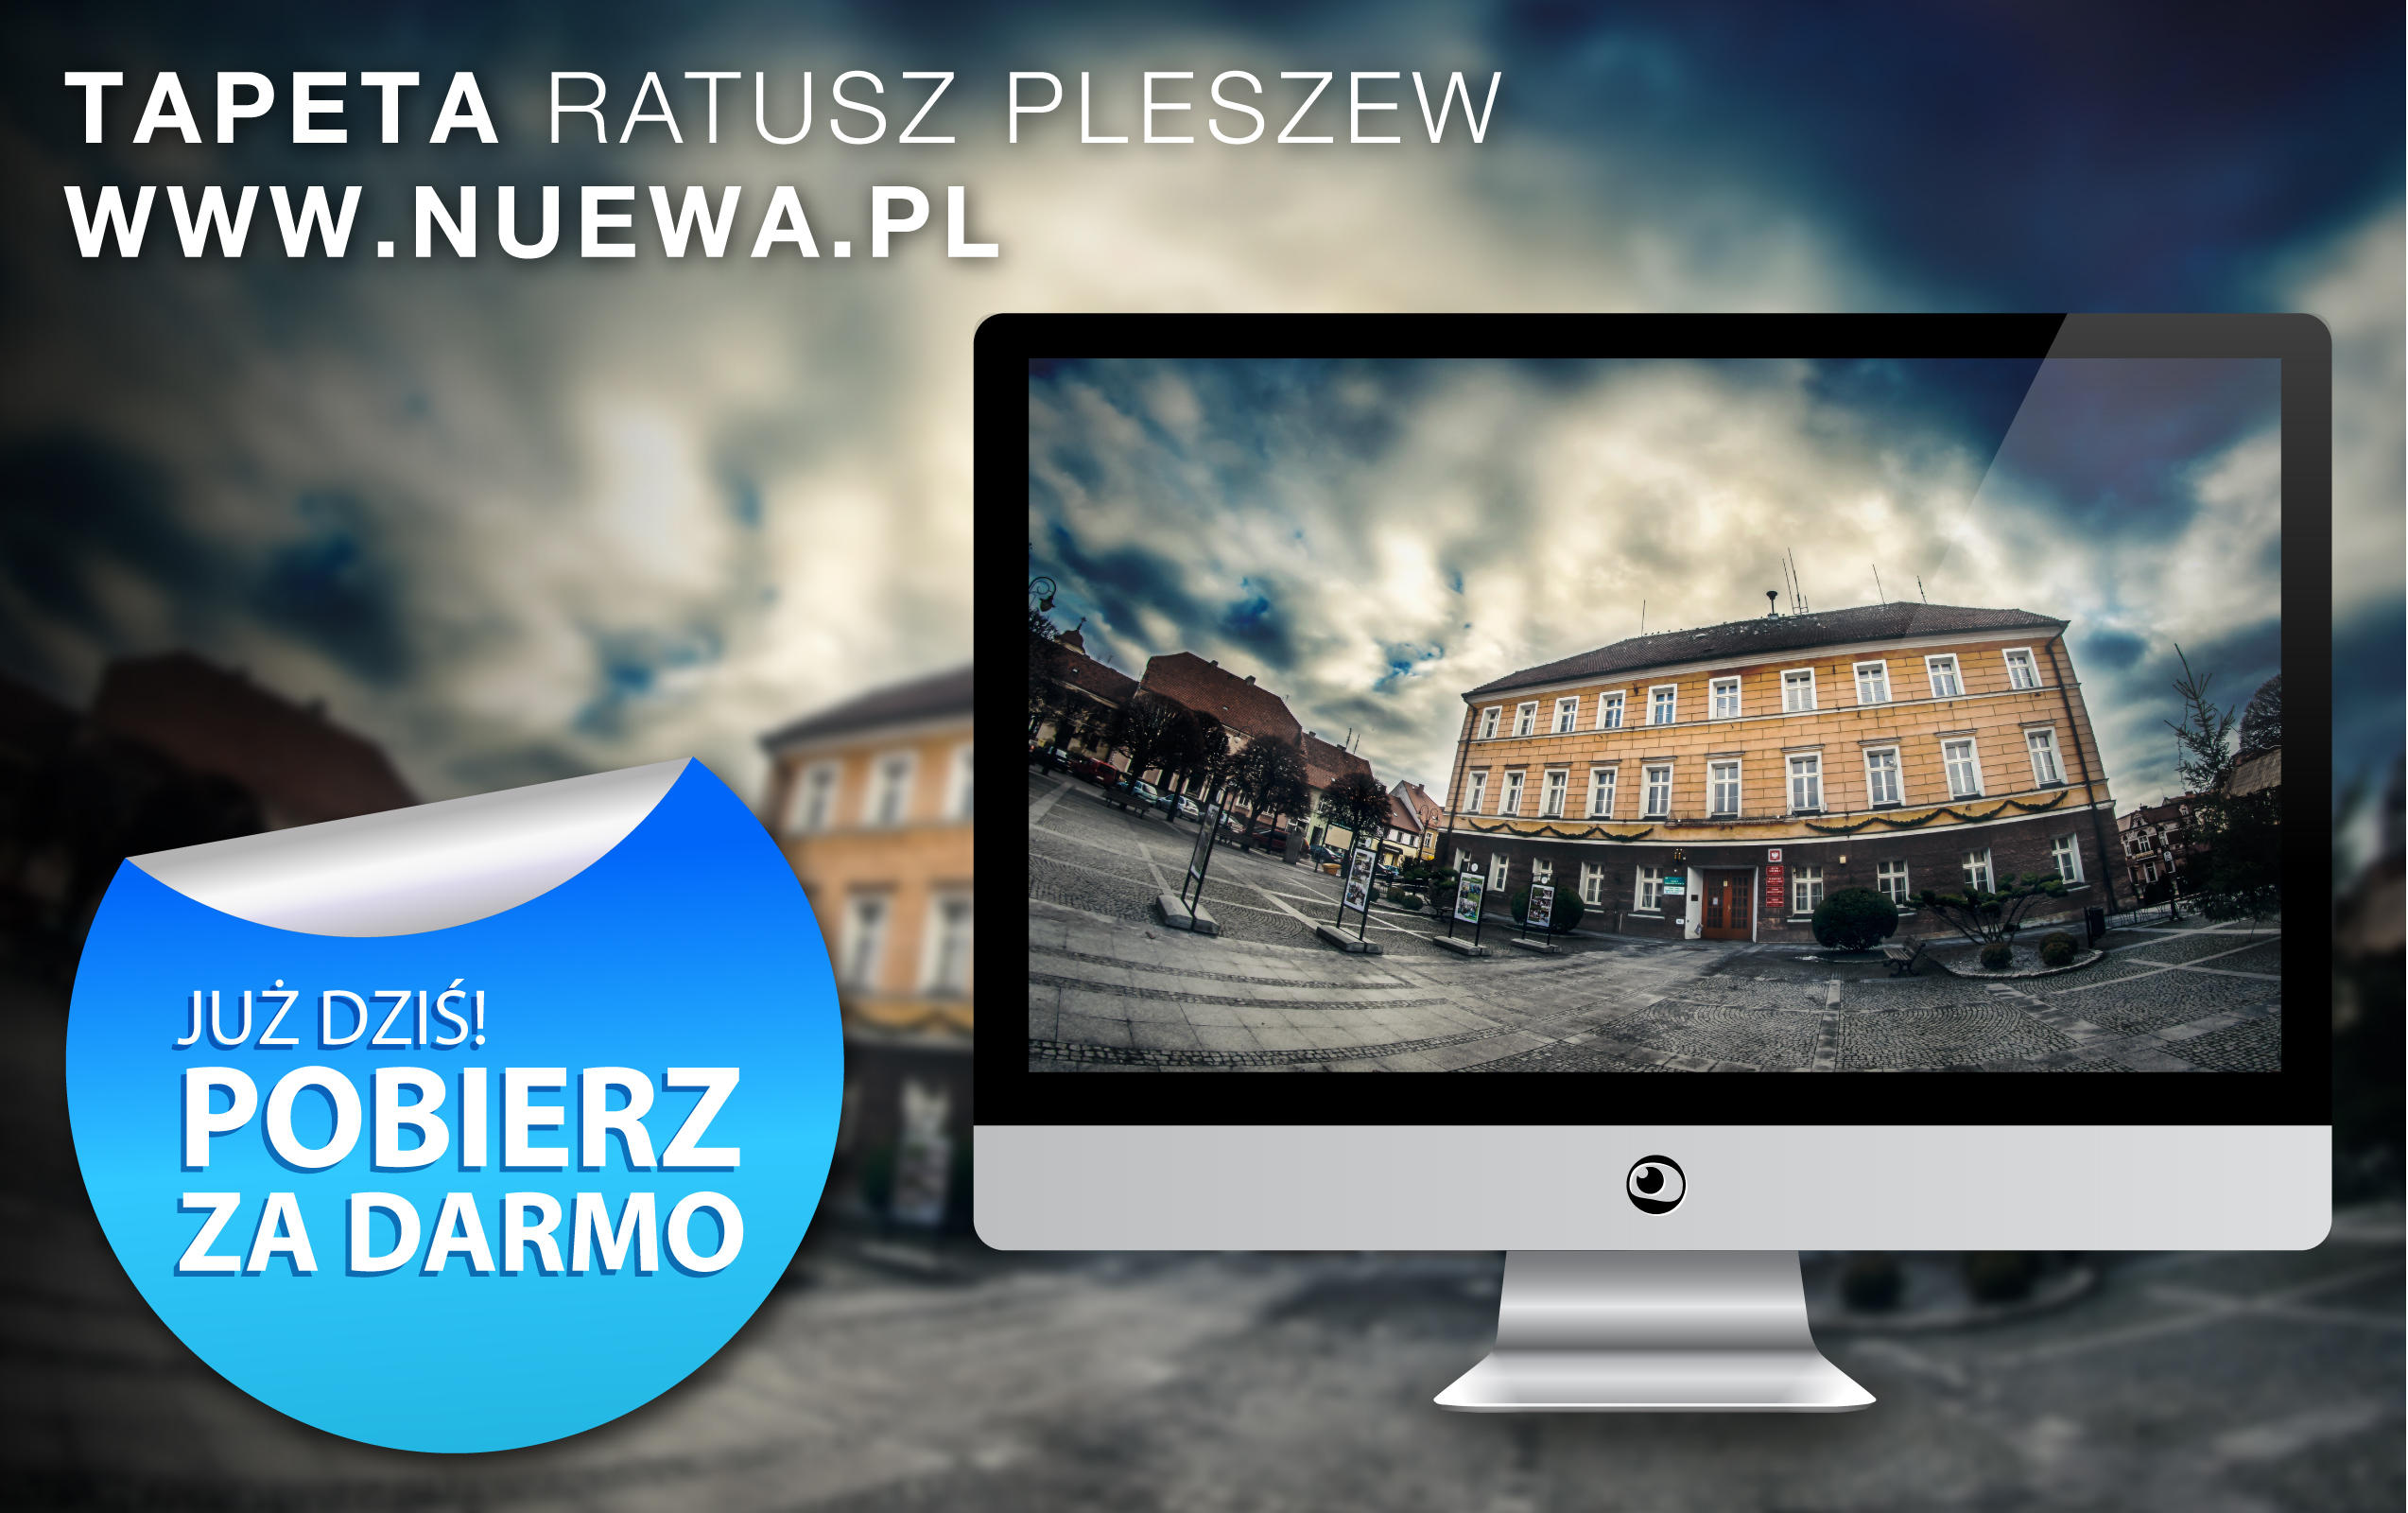 City hall Pleszew Wallpaper by nuewa